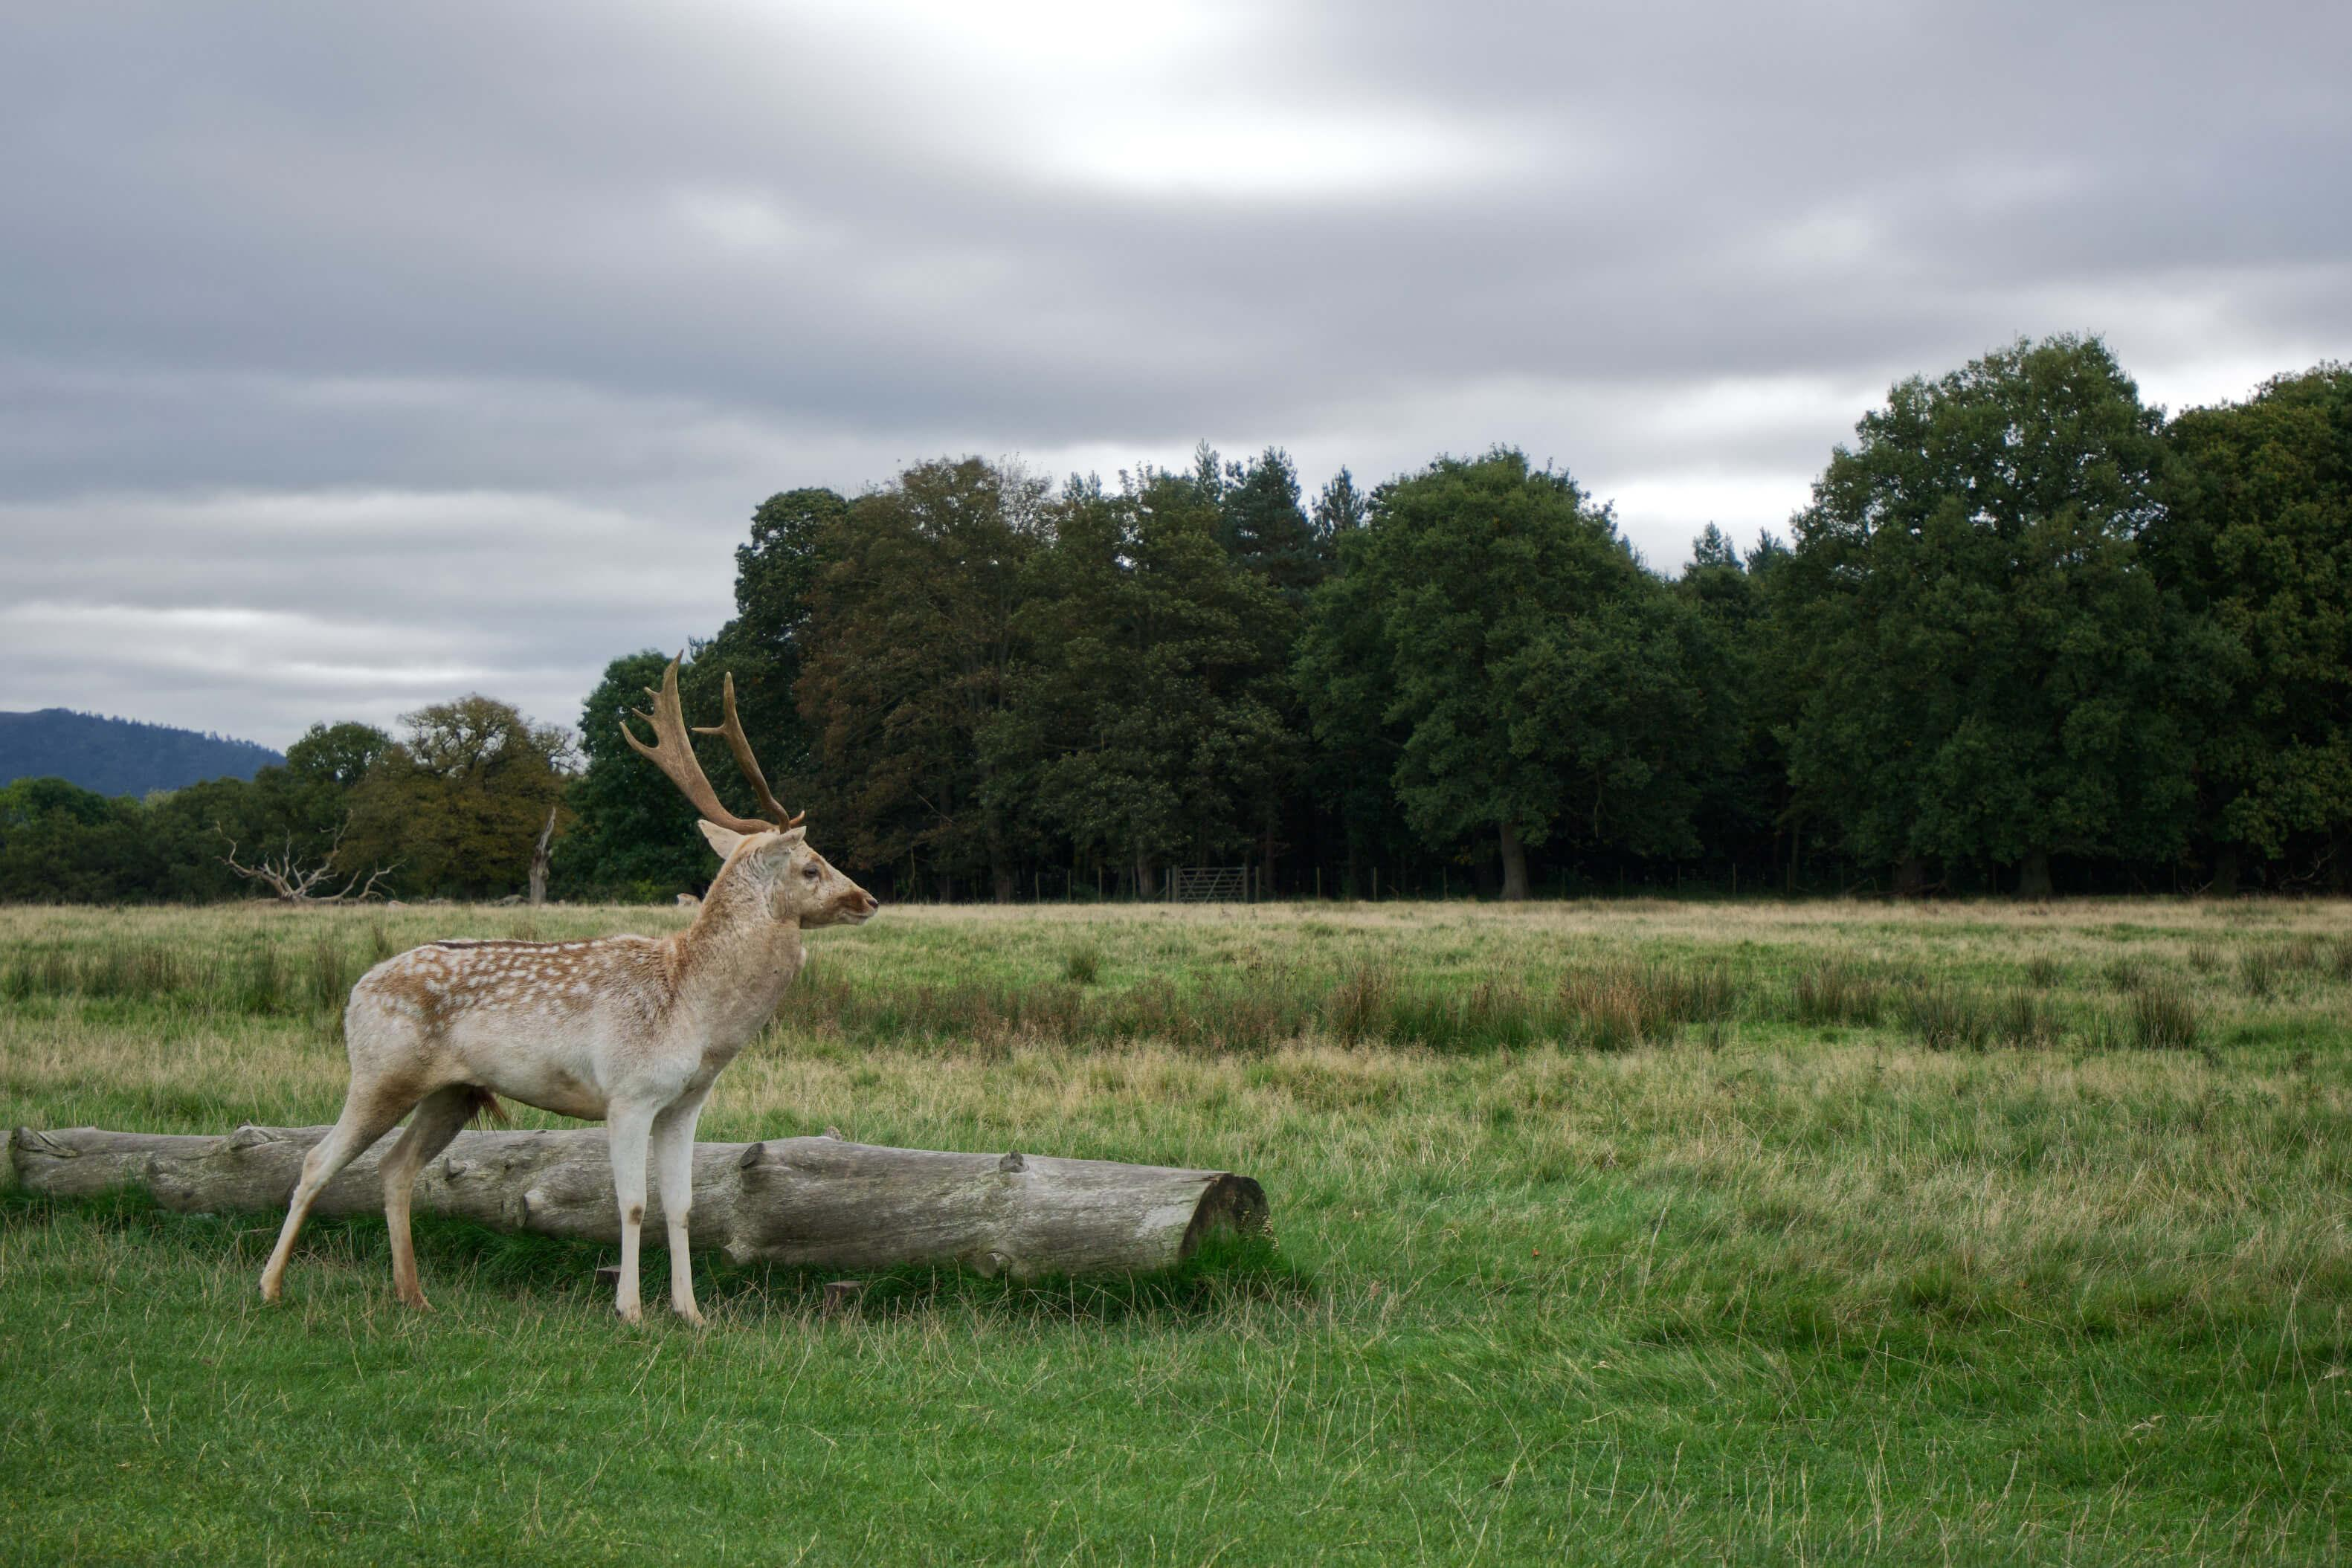 A casual stroll around @AttinghamParkNT led to some very angry and majestic deer